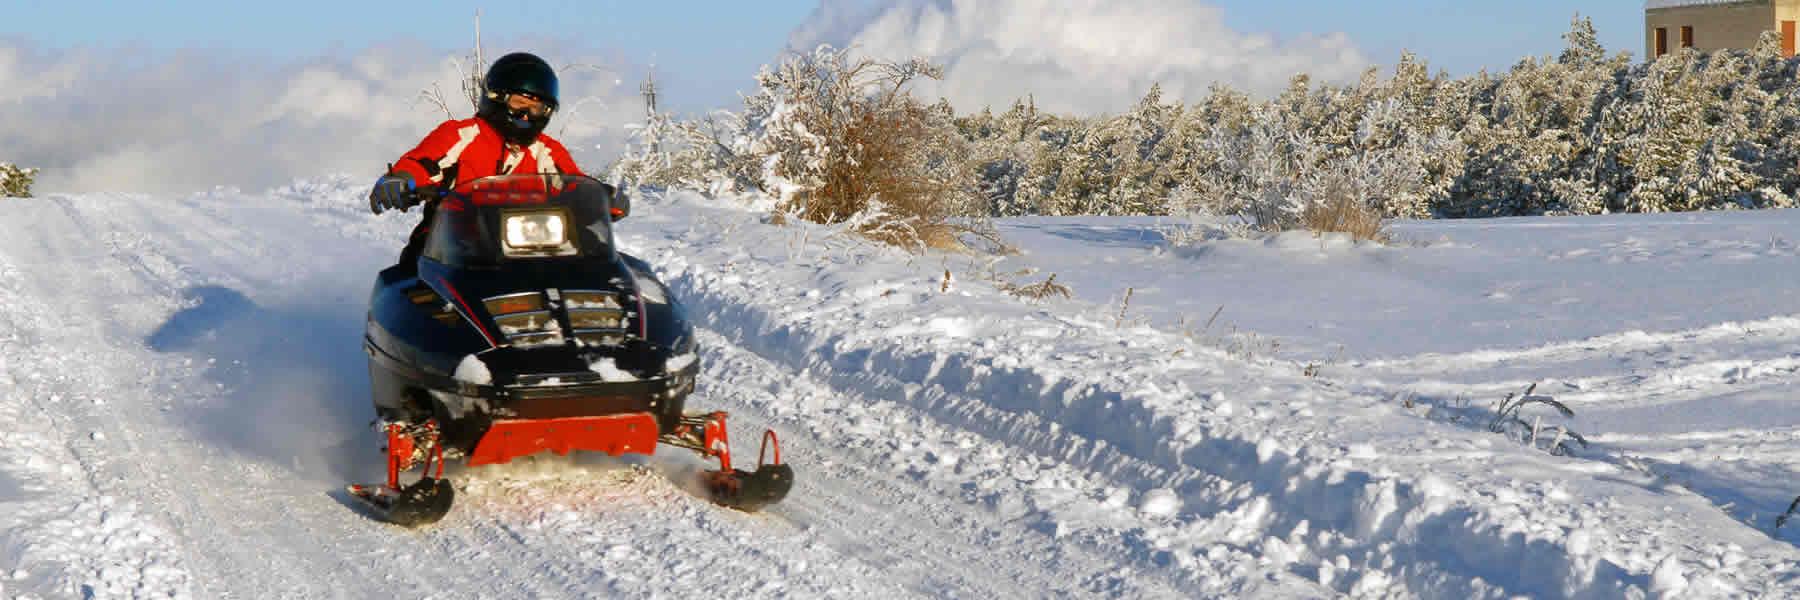 Get gas for your ATV, Snowmobile, boat, or three wheeler at Ice Cracking Lodge.